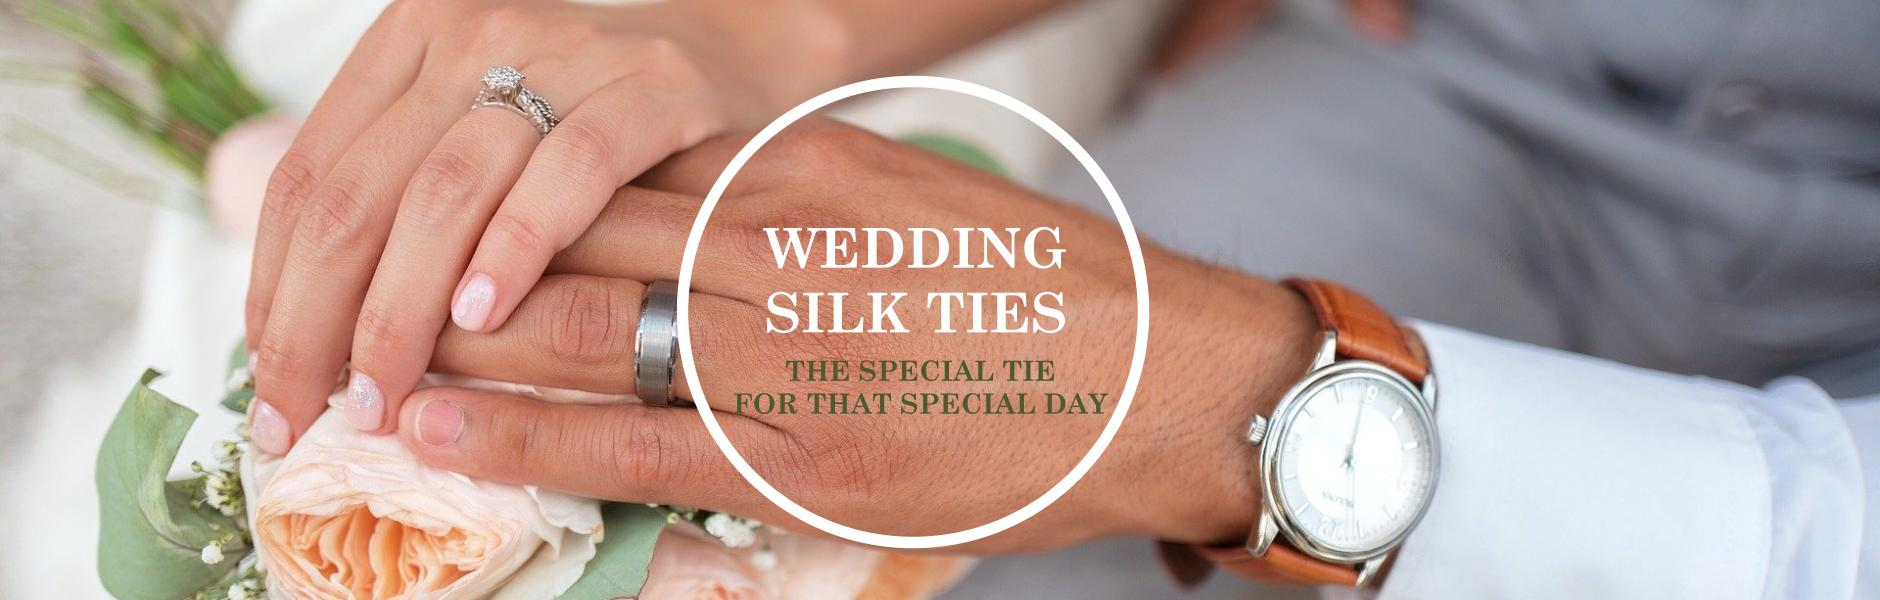 Wedding Silk Ties